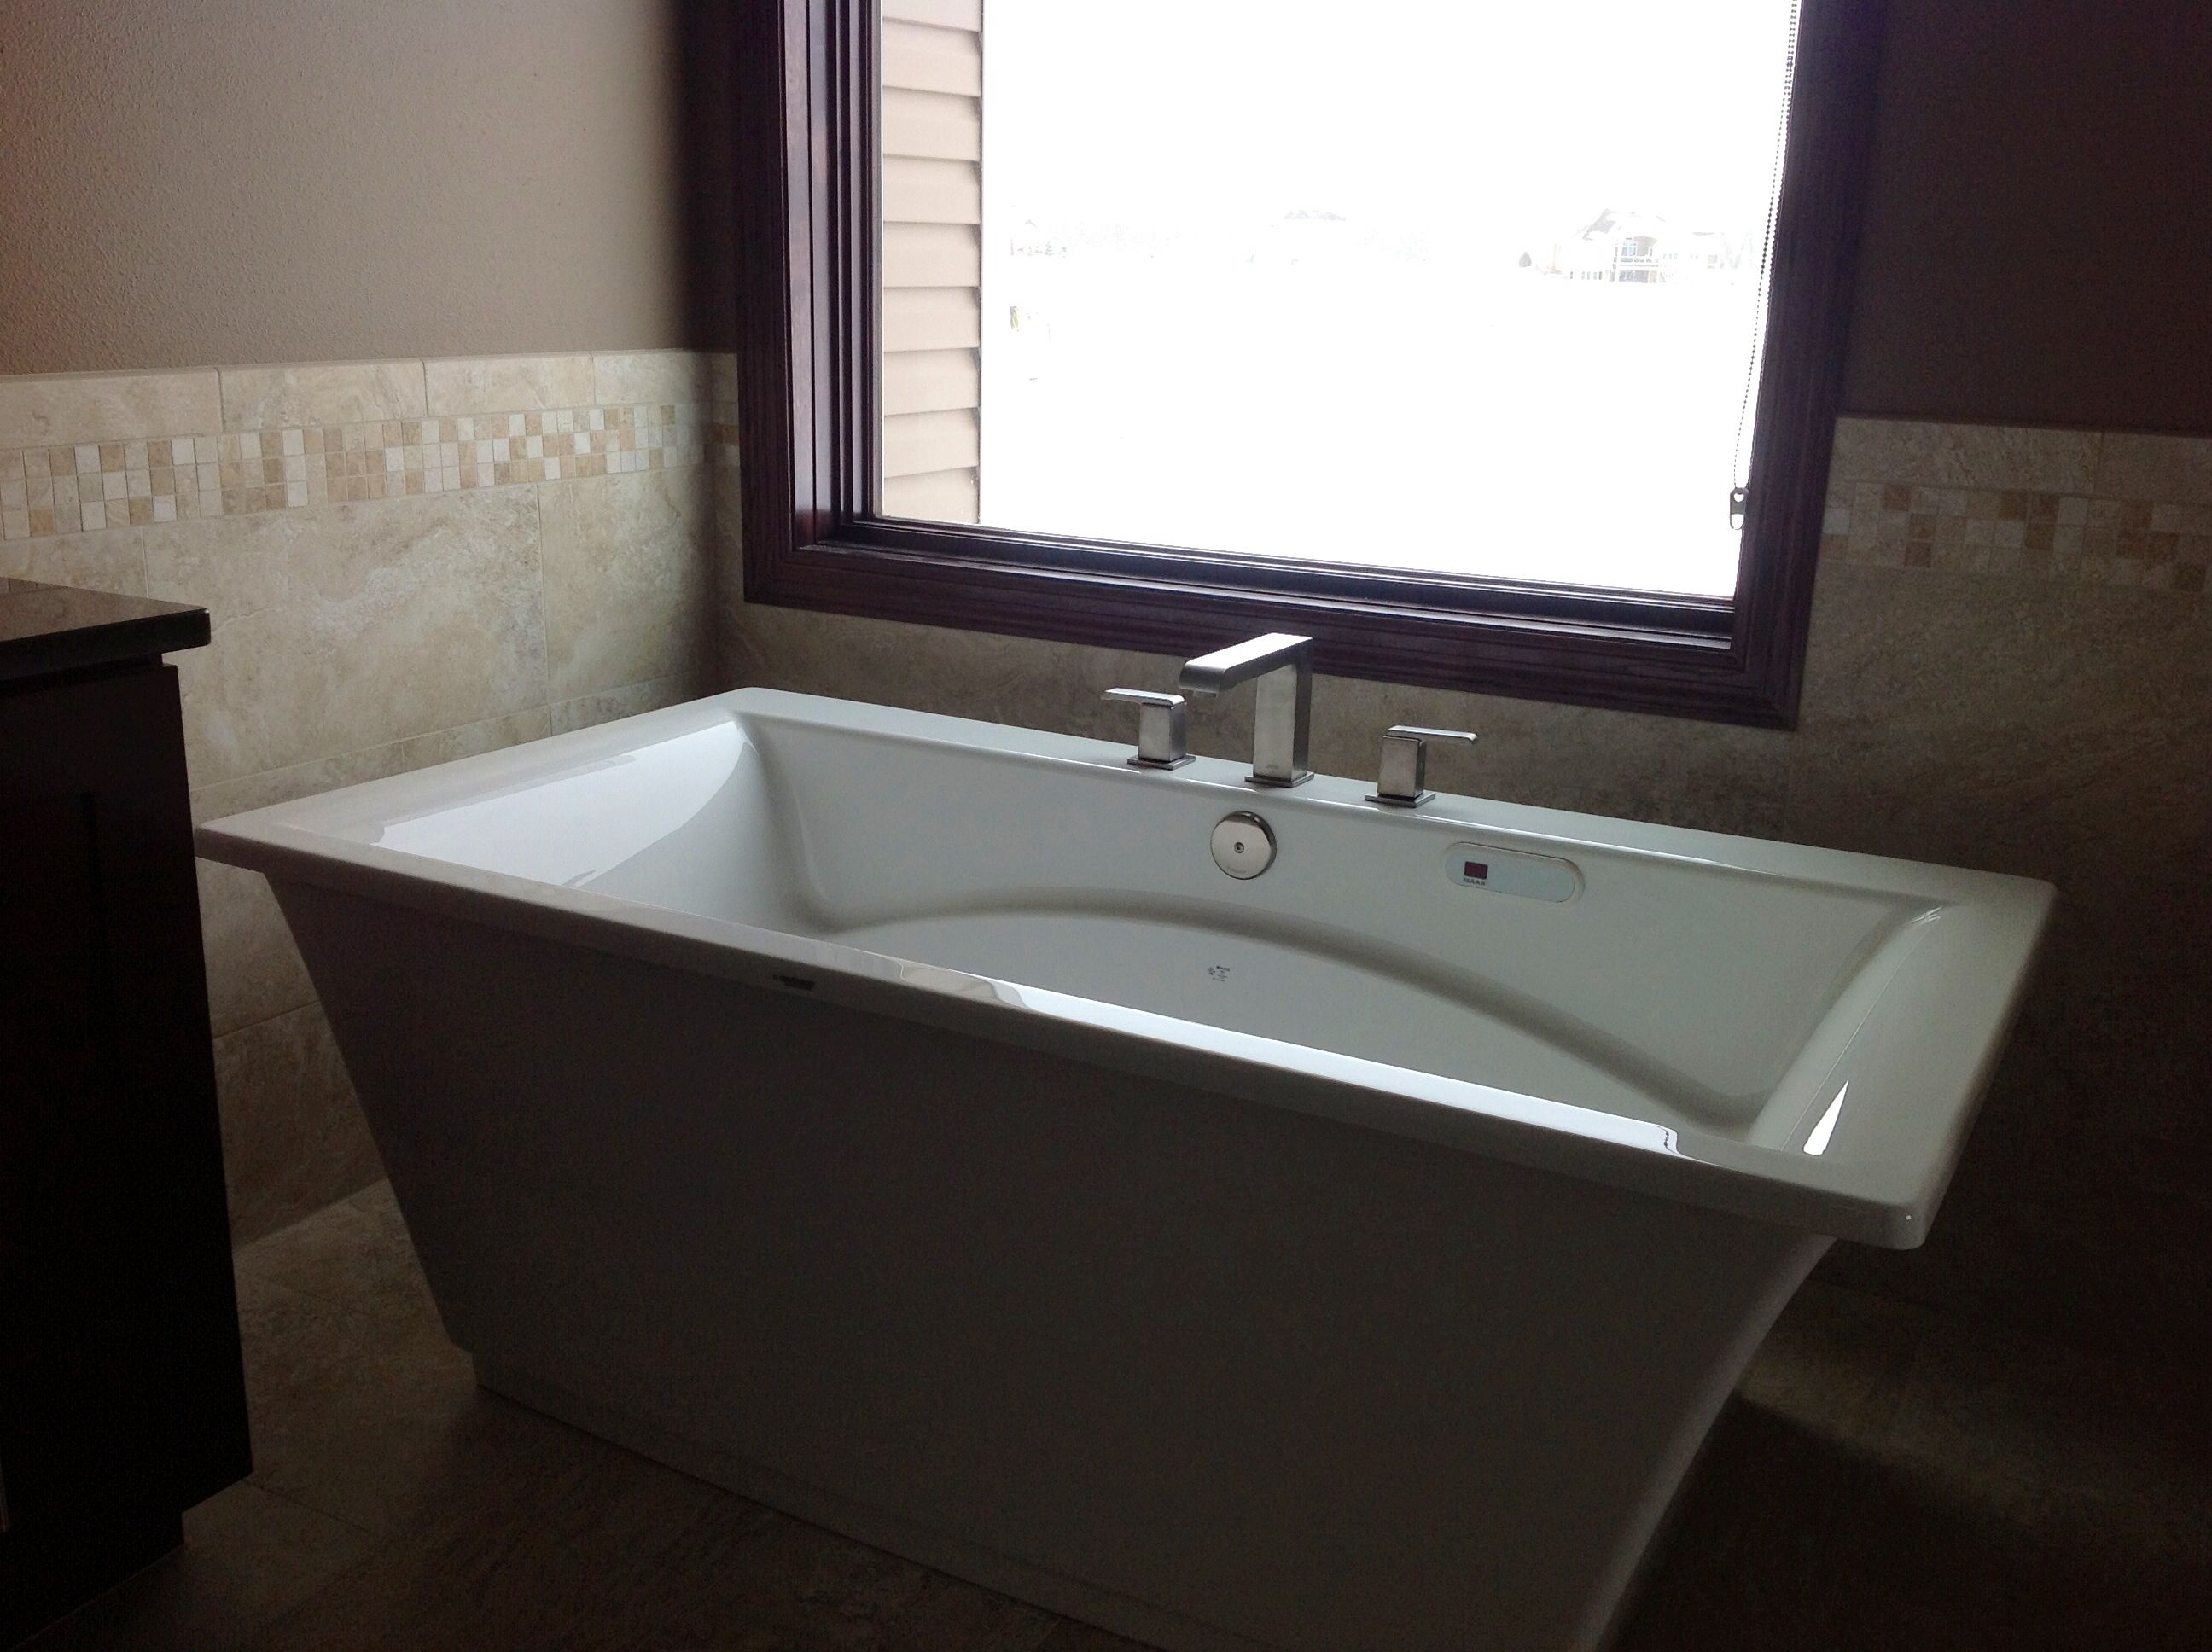 Freestanding tub with deck mount faucet | Our Work | Pinterest ...